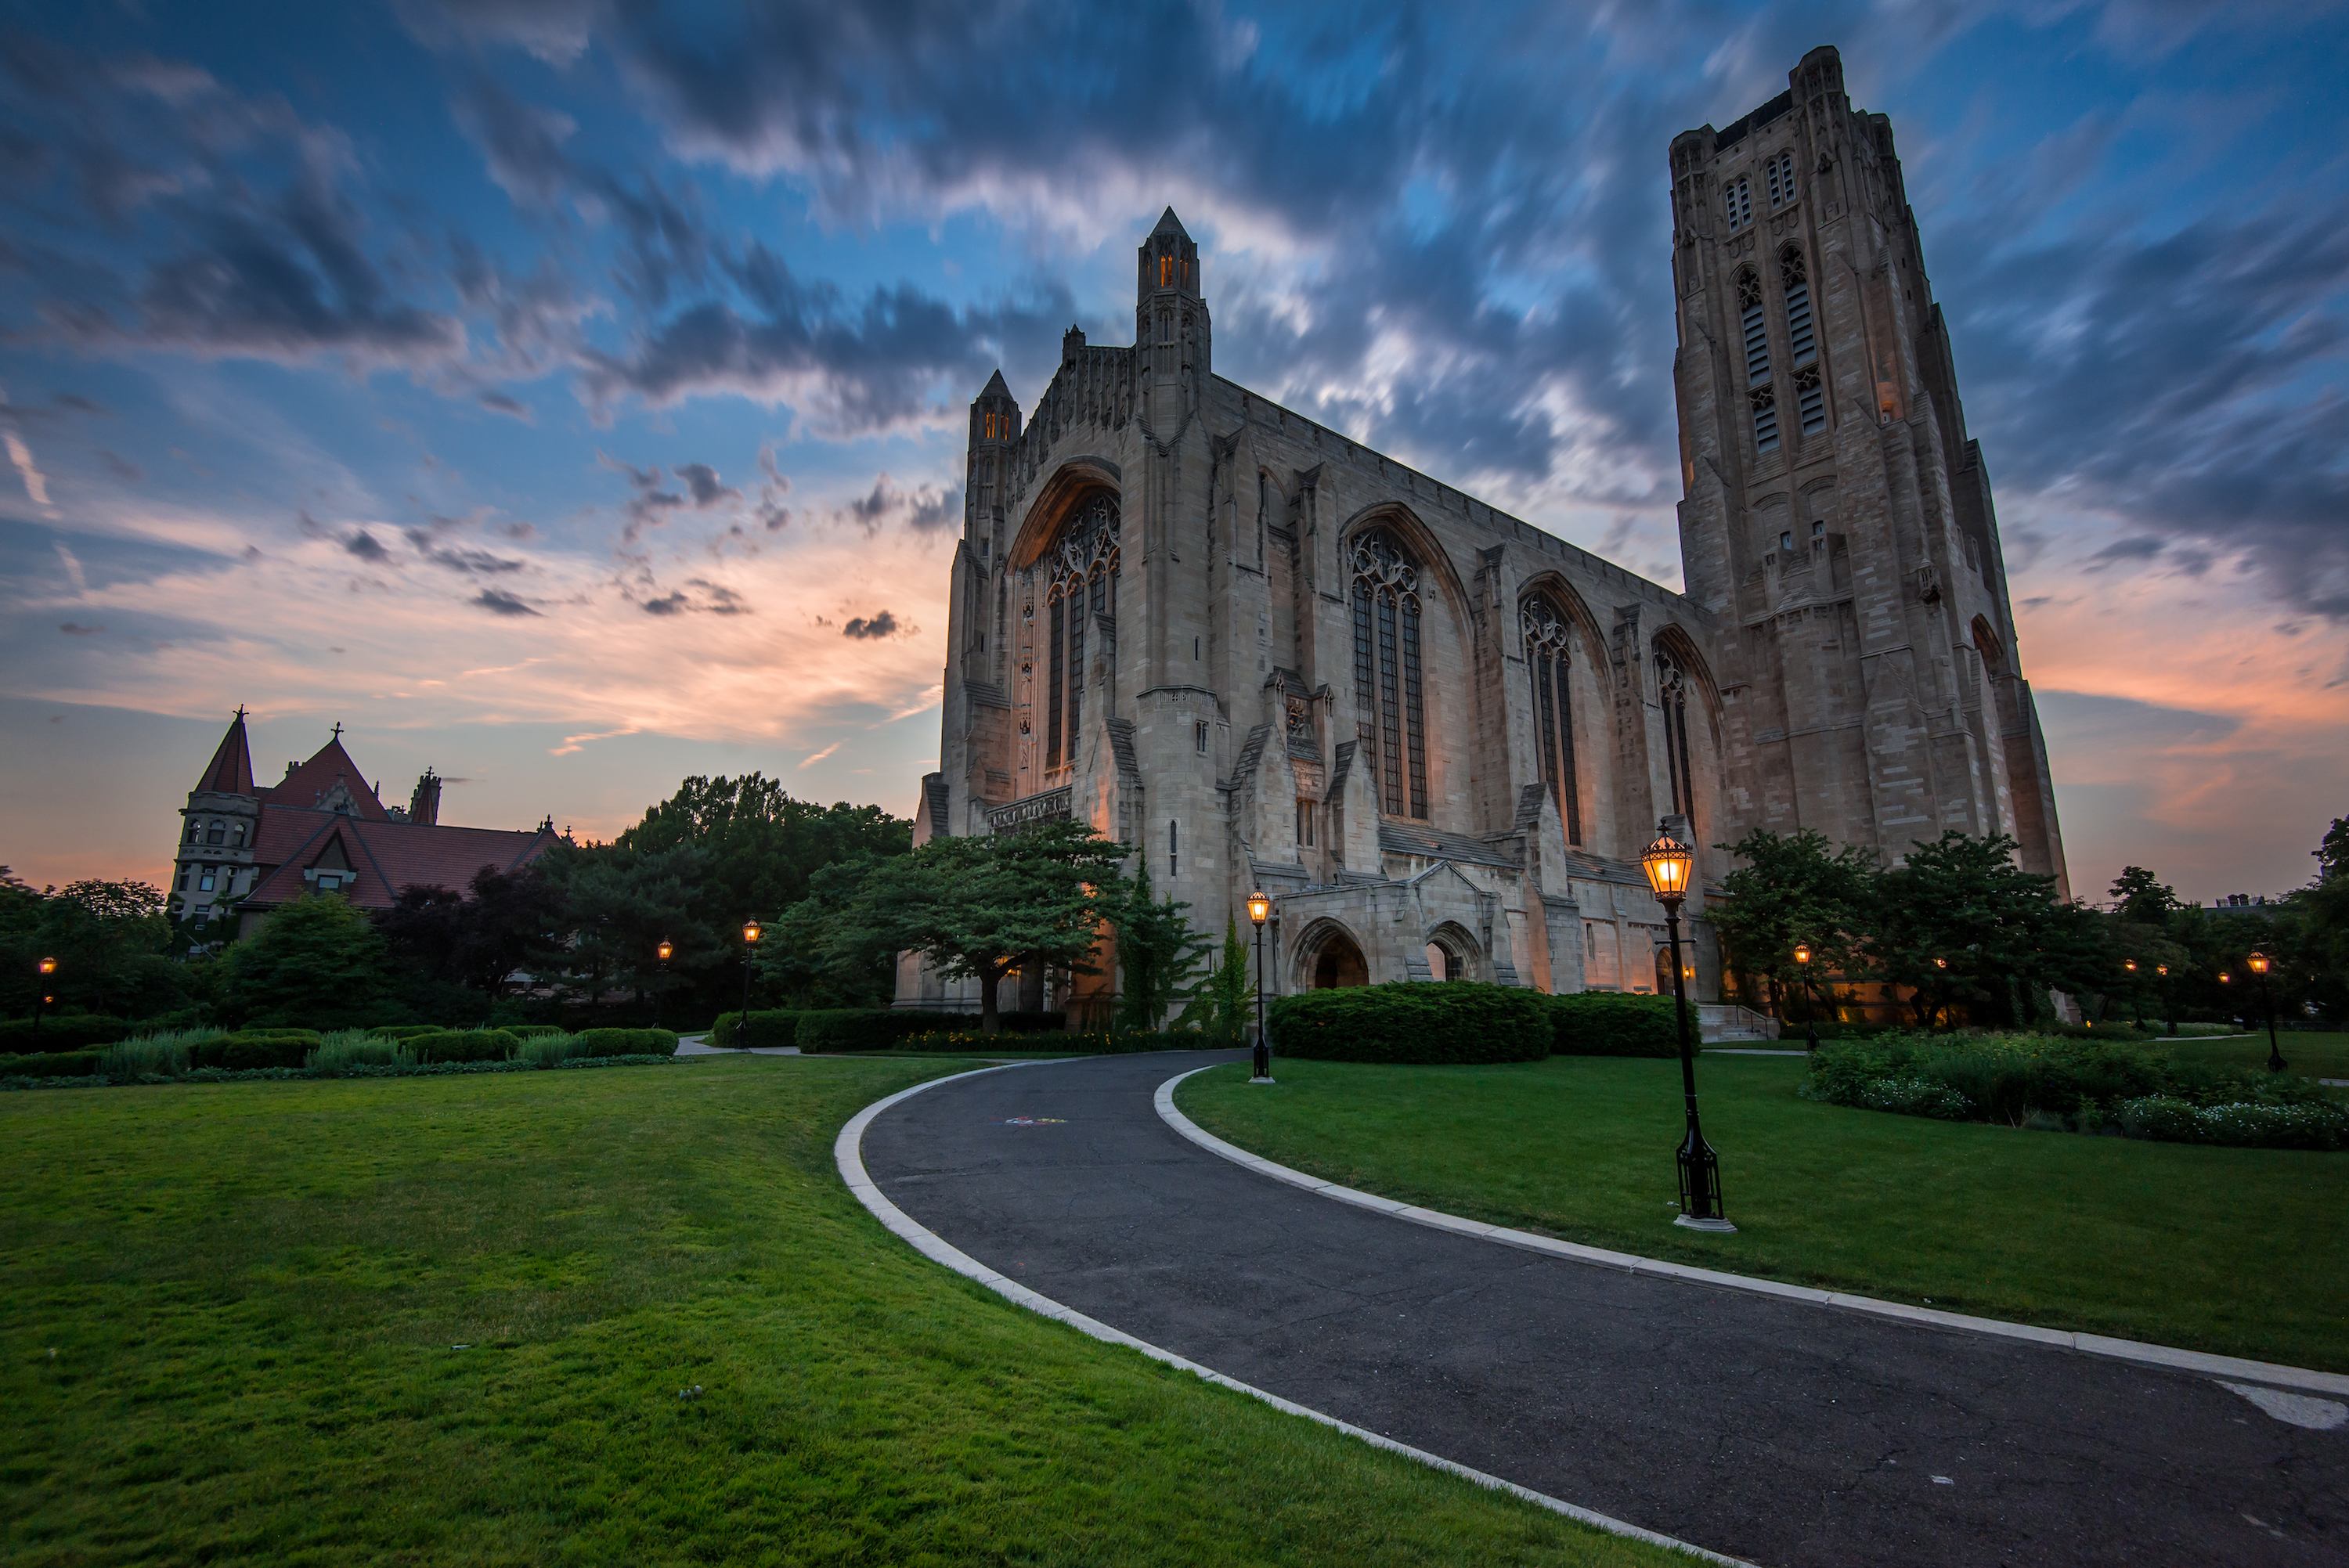 Rockefeller Chapel, on the University of Chicago campus.